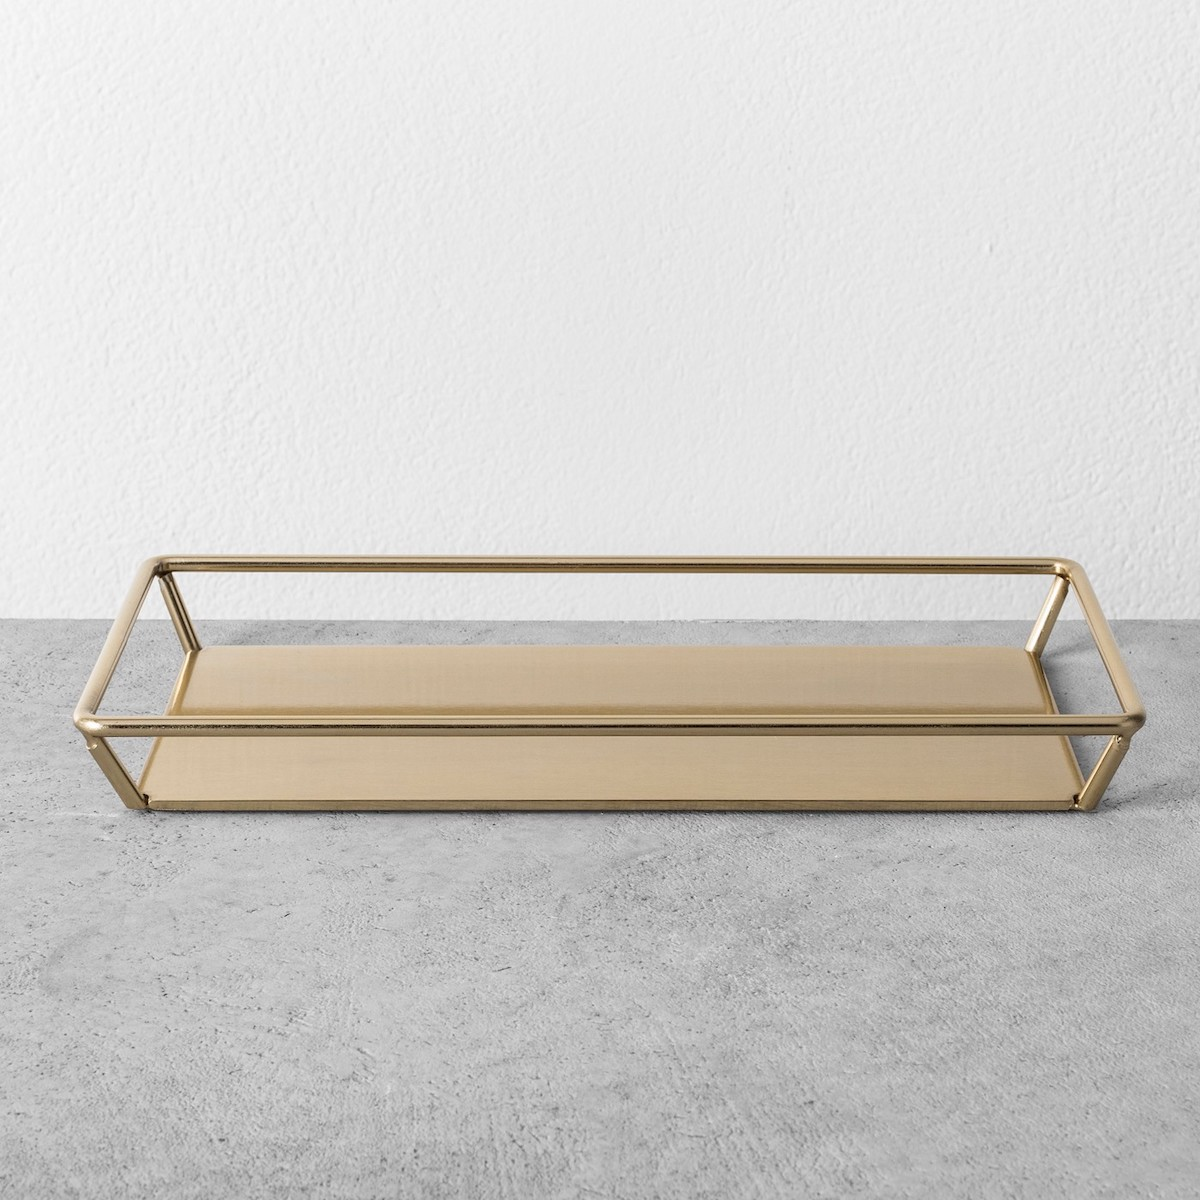 Joanna Gaines Target Fall Collection, Brass Tray